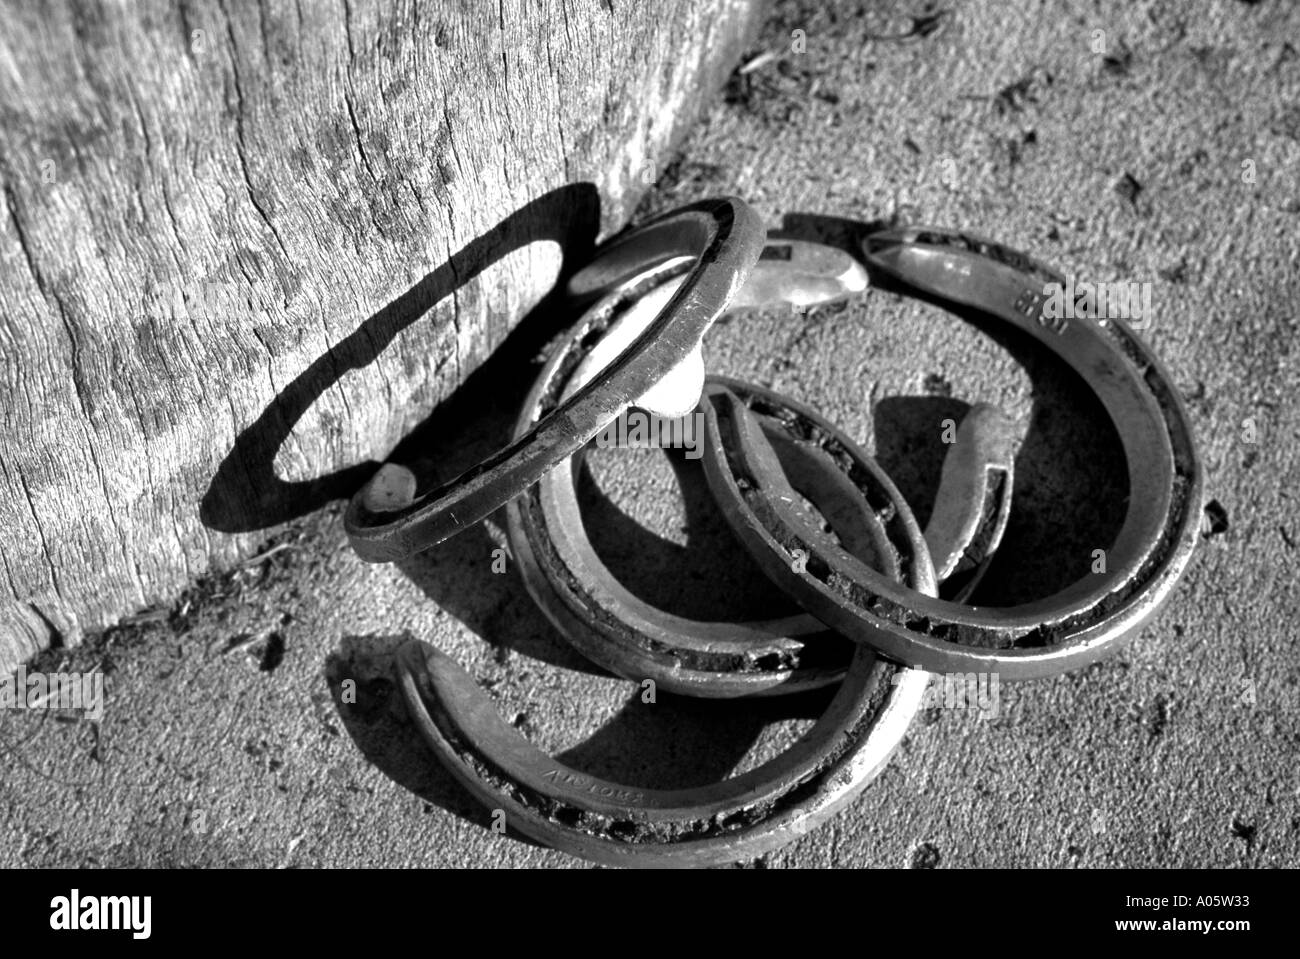 black and white of horseshoes and a barrel - Stock Image